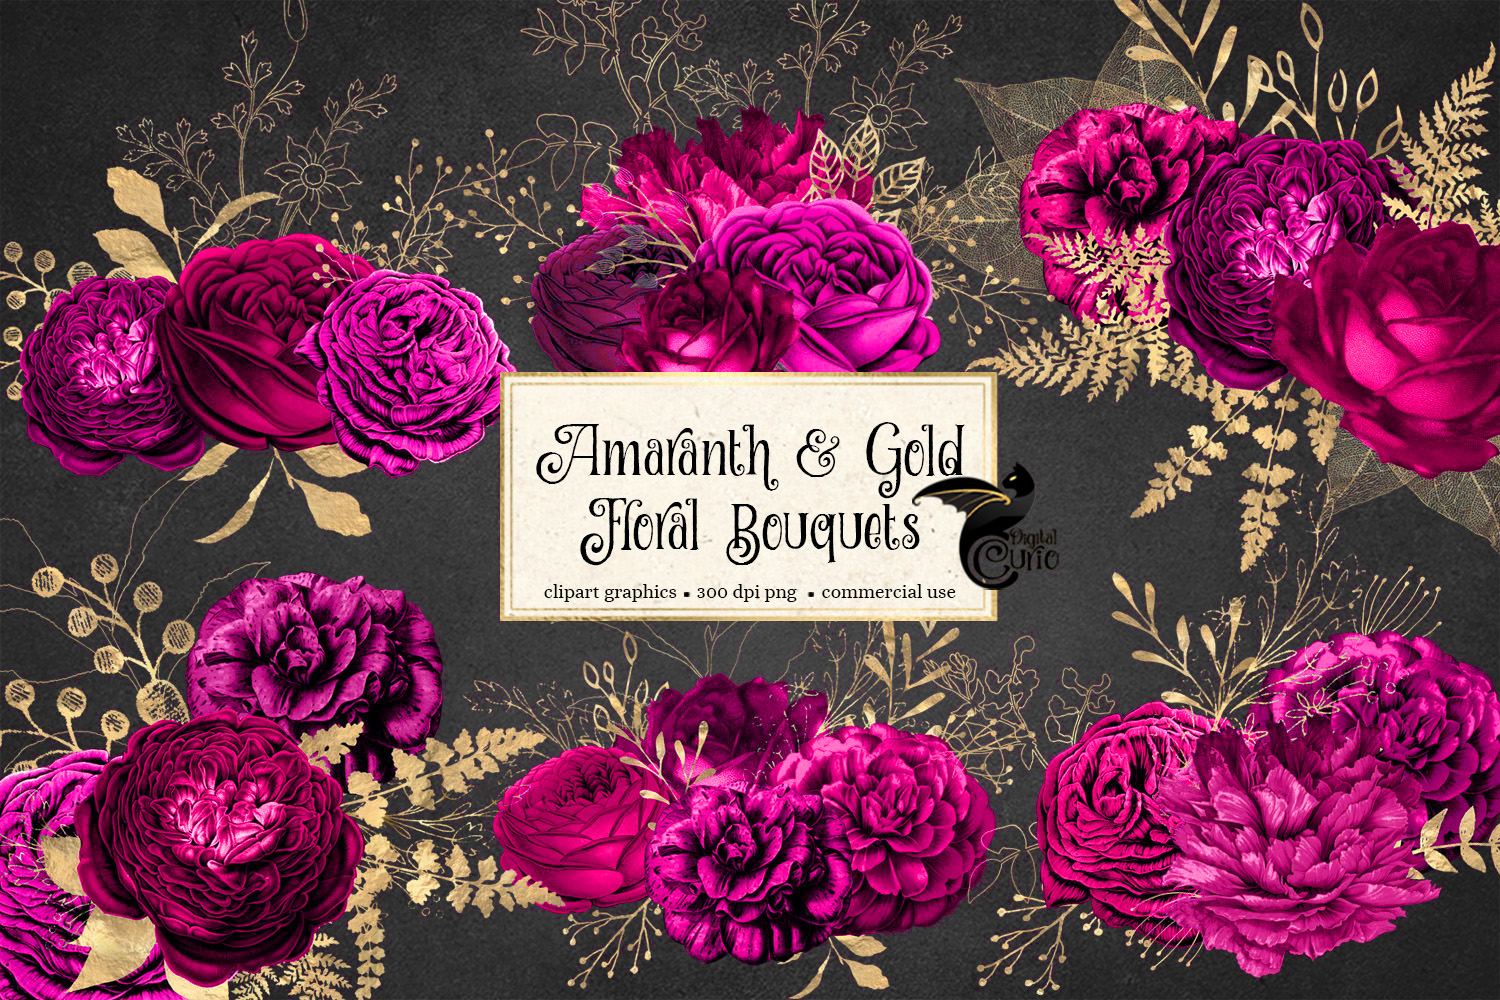 Amaranth and Gold Floral Bouquets example image 2